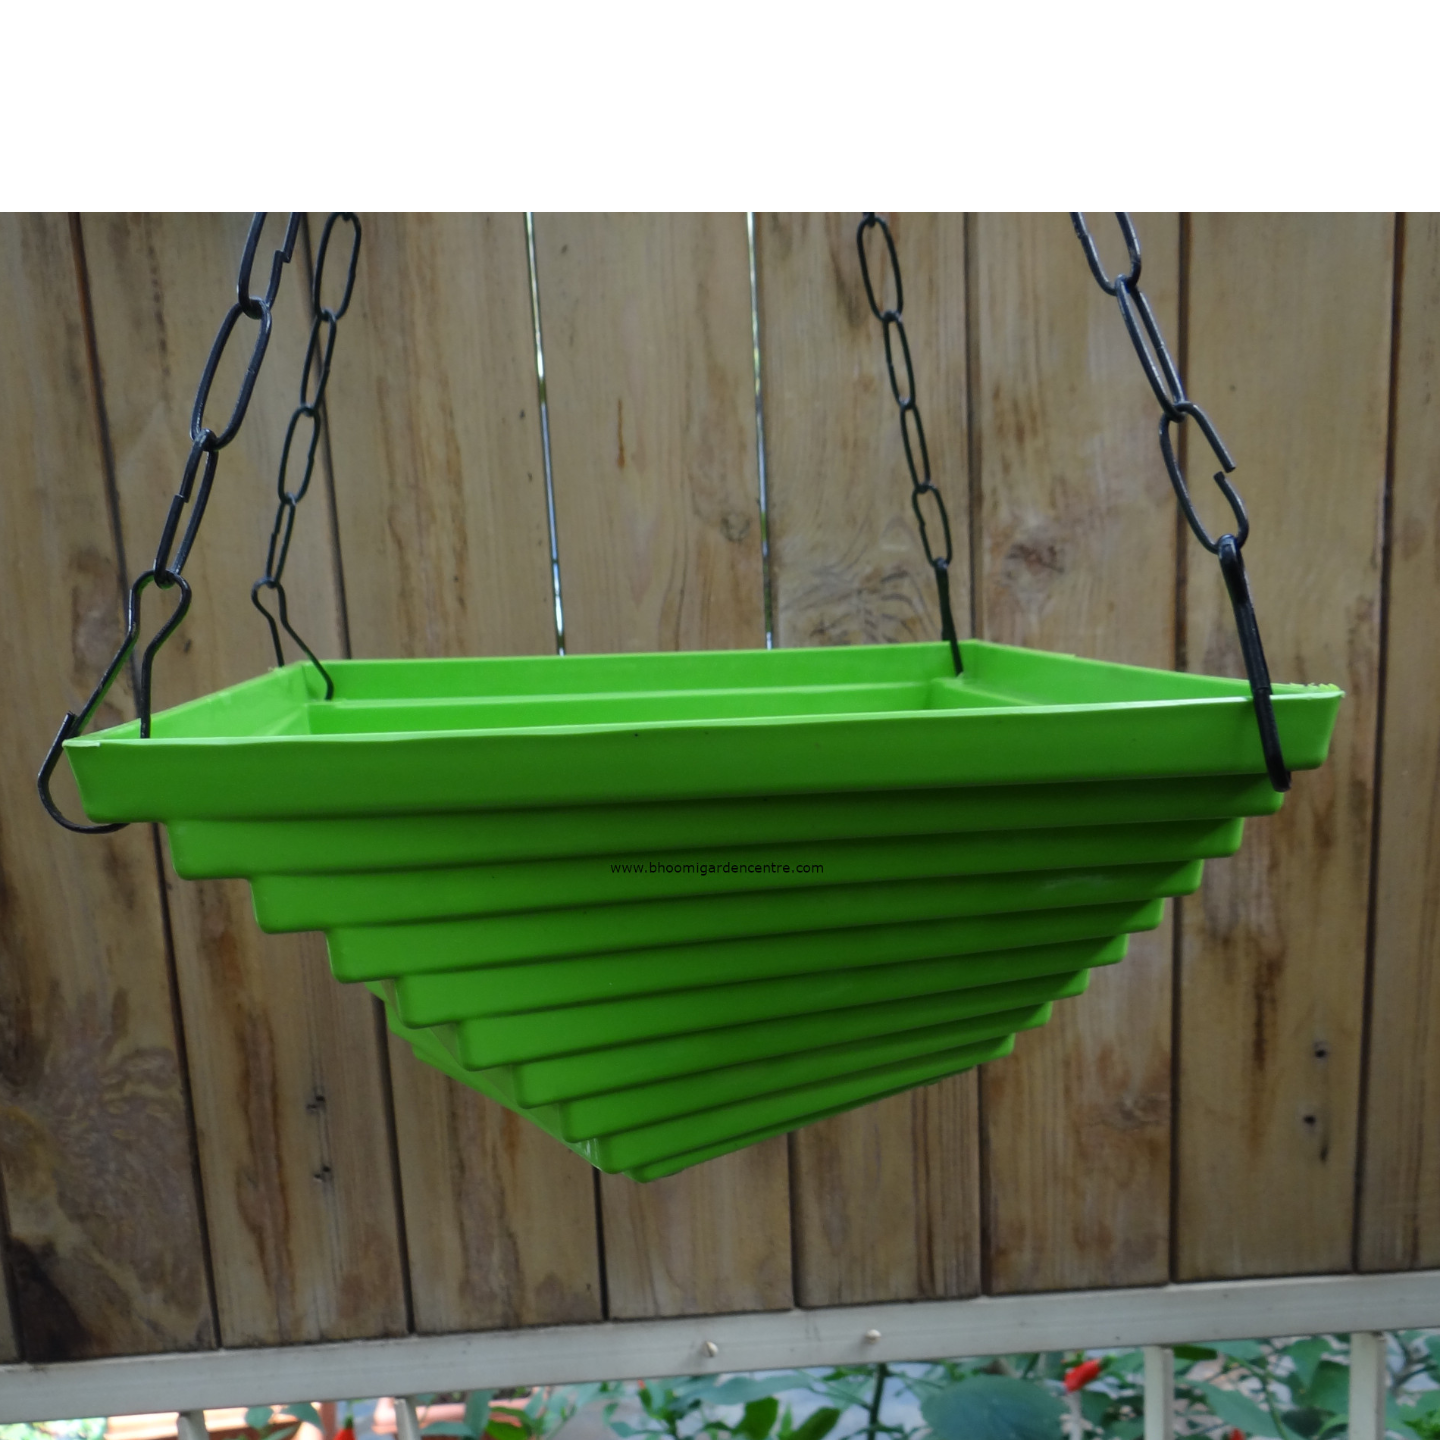 Twister green hanging plastic pot (9 inch)